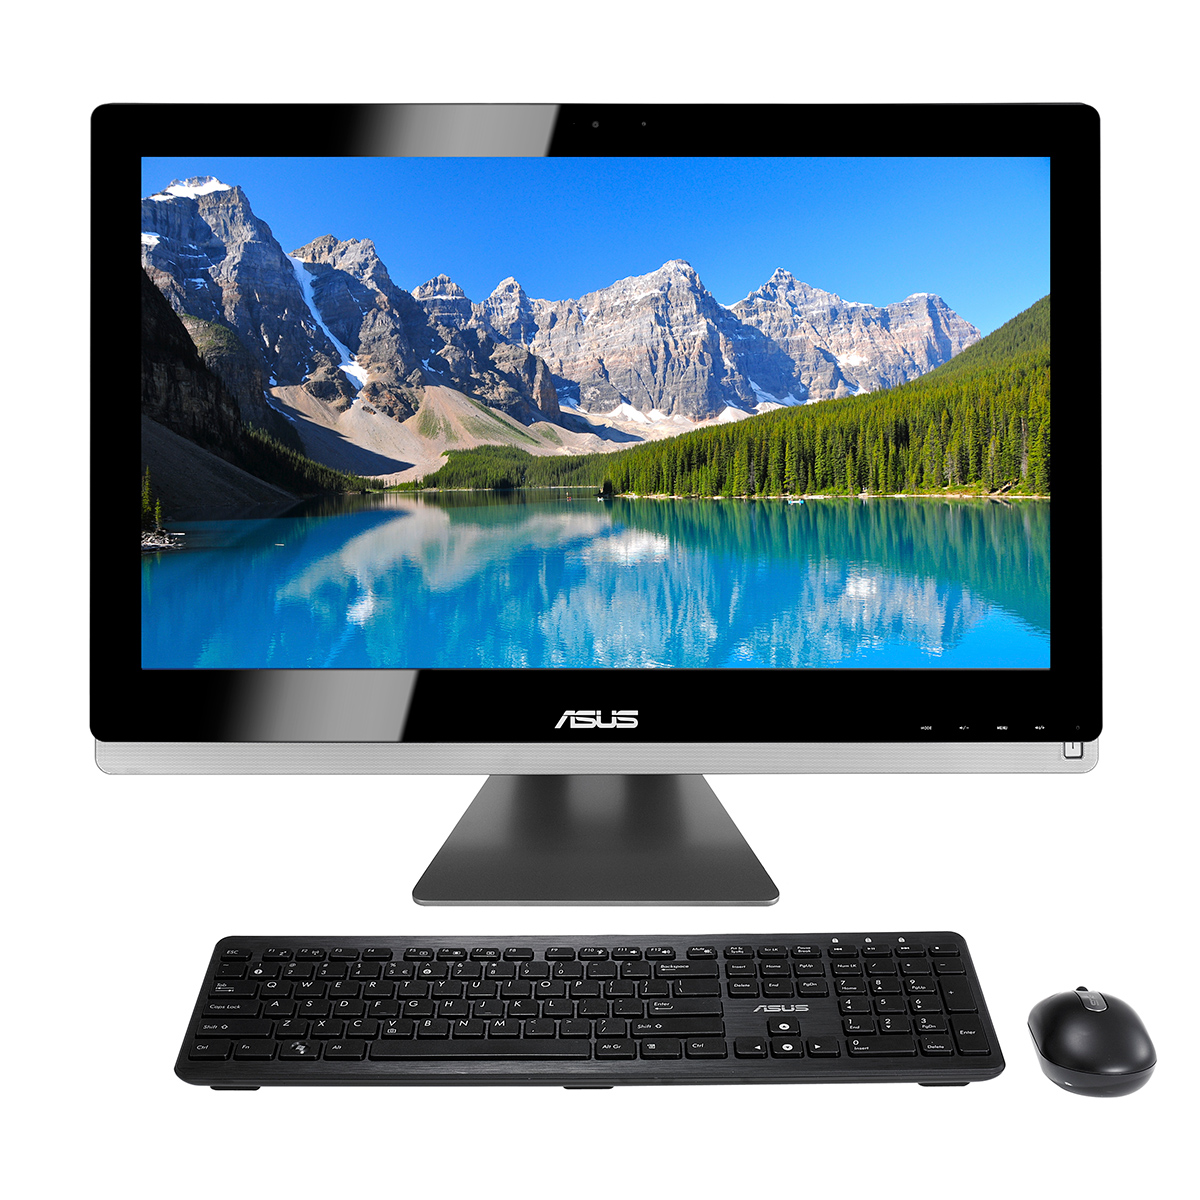 Asus all in one pc et2702igth bh002k pc de bureau asus sur - Ordinateur de bureau windows 7 pro ...